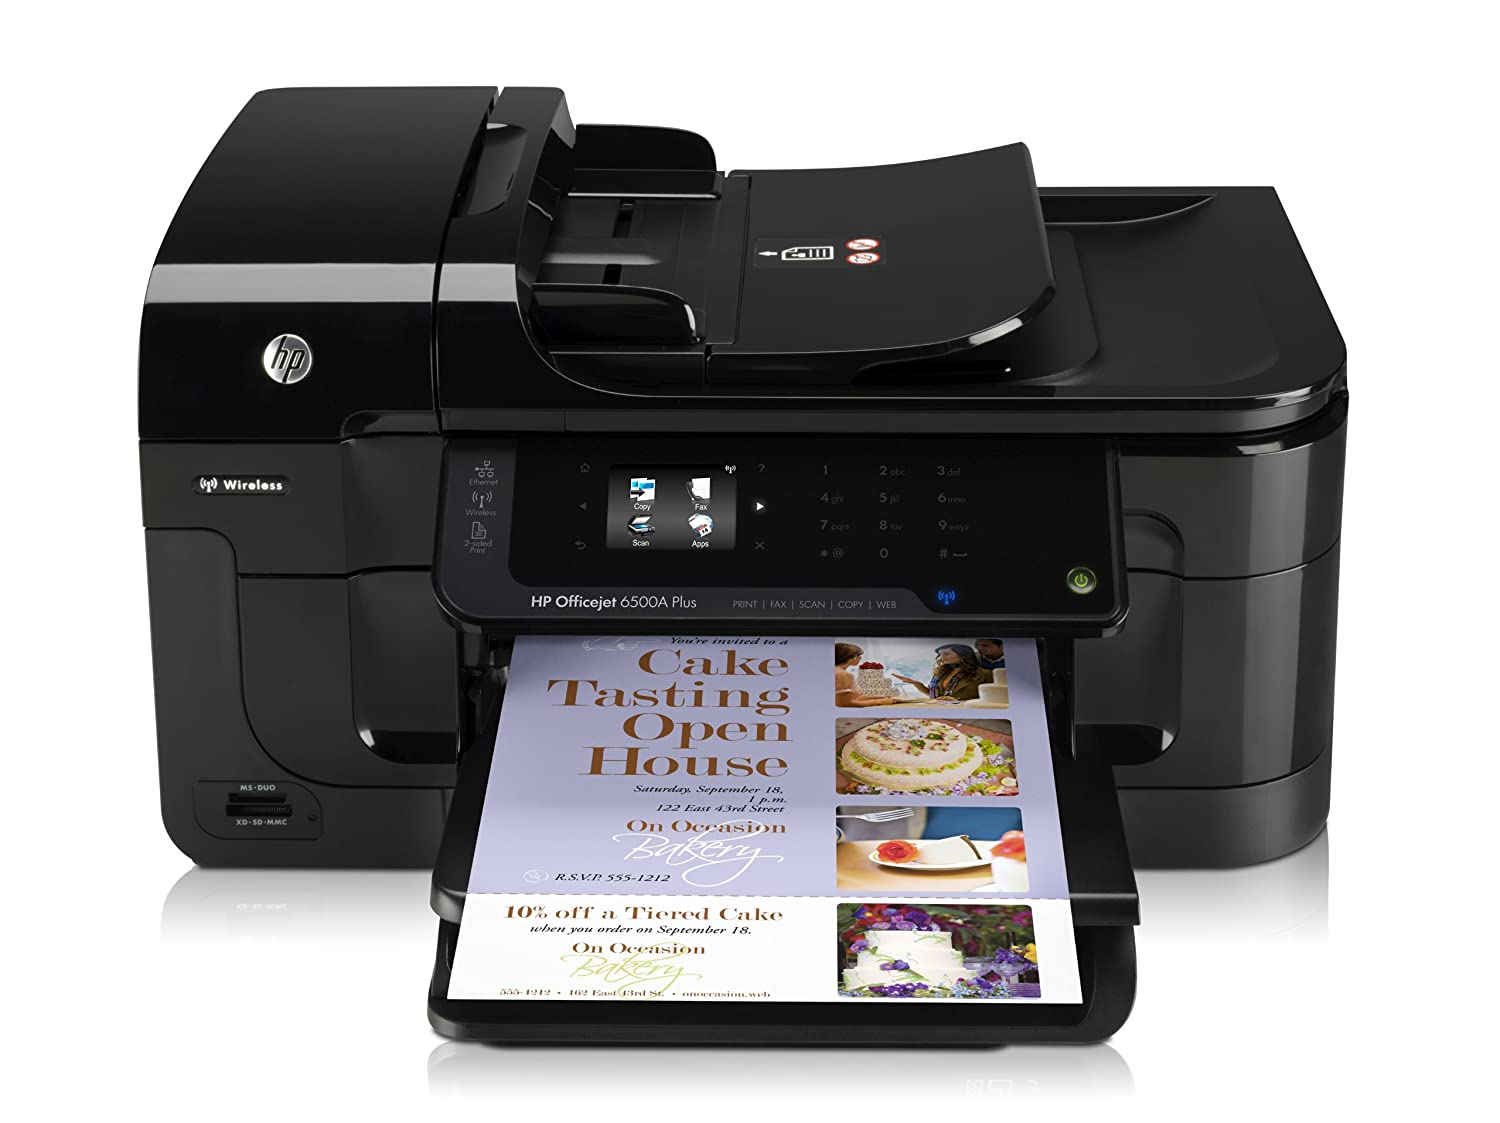 HP Officejet Plus 6500A e-All-in-One Web Enabled Printer (Print, Scan,  Copy, Fax, Wireless, e-Print): Amazon.co.uk: Computers & Accessories